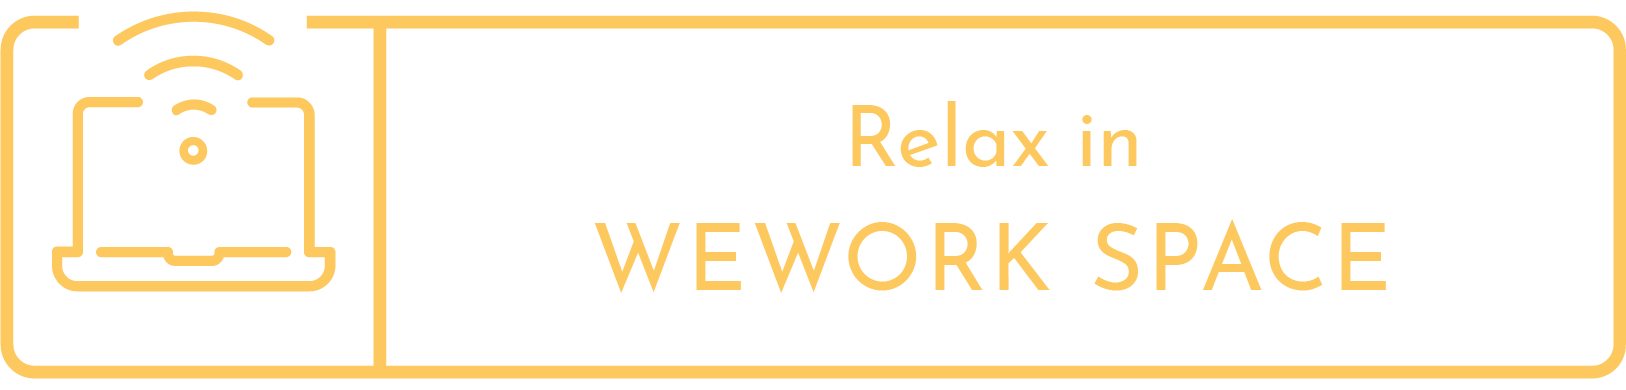 Relax or Work in WeWork Spaces